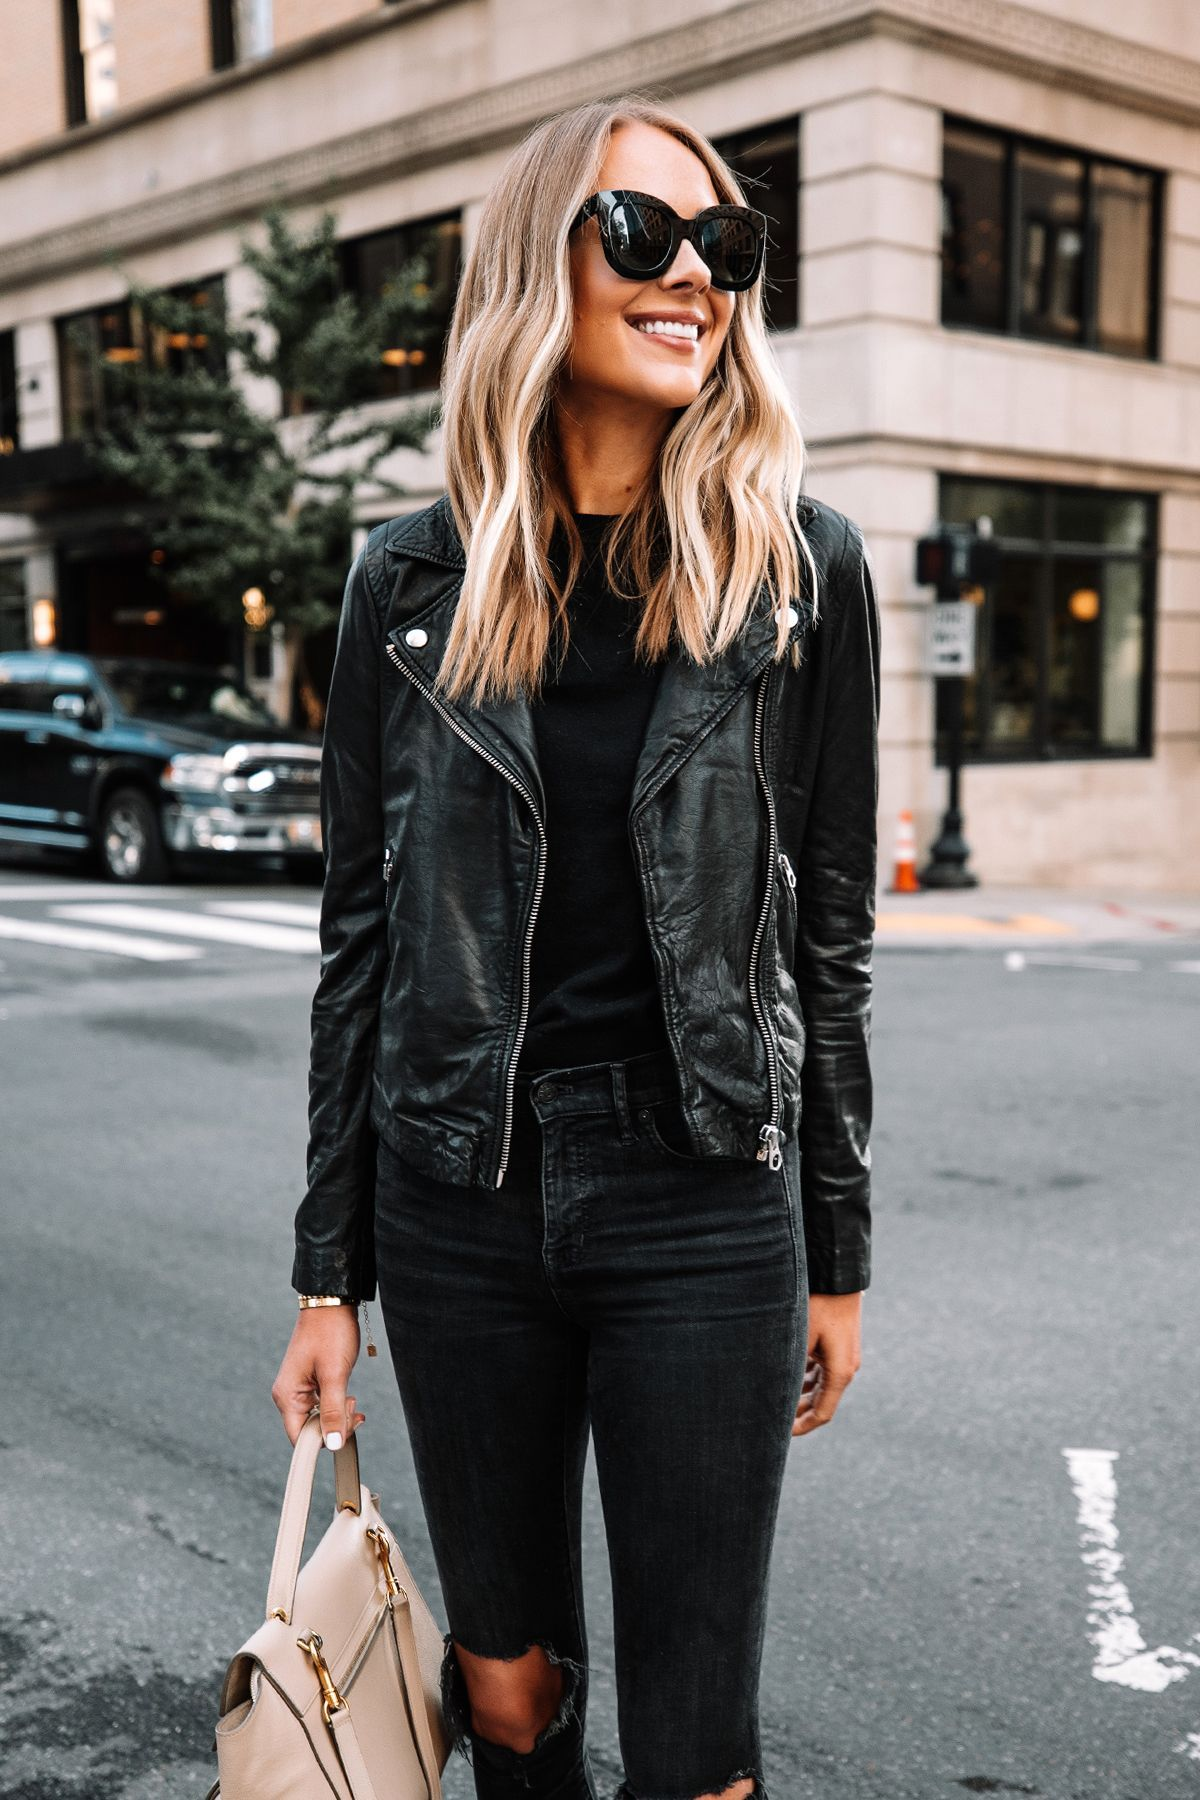 Fall All Black Outfit Black Jeans Outfit For Fall Leather Jacket Outfit Black Leather Jacket Fall Fashion Fashion Jackson Leather Jacket Outfits [ 1800 x 1200 Pixel ]